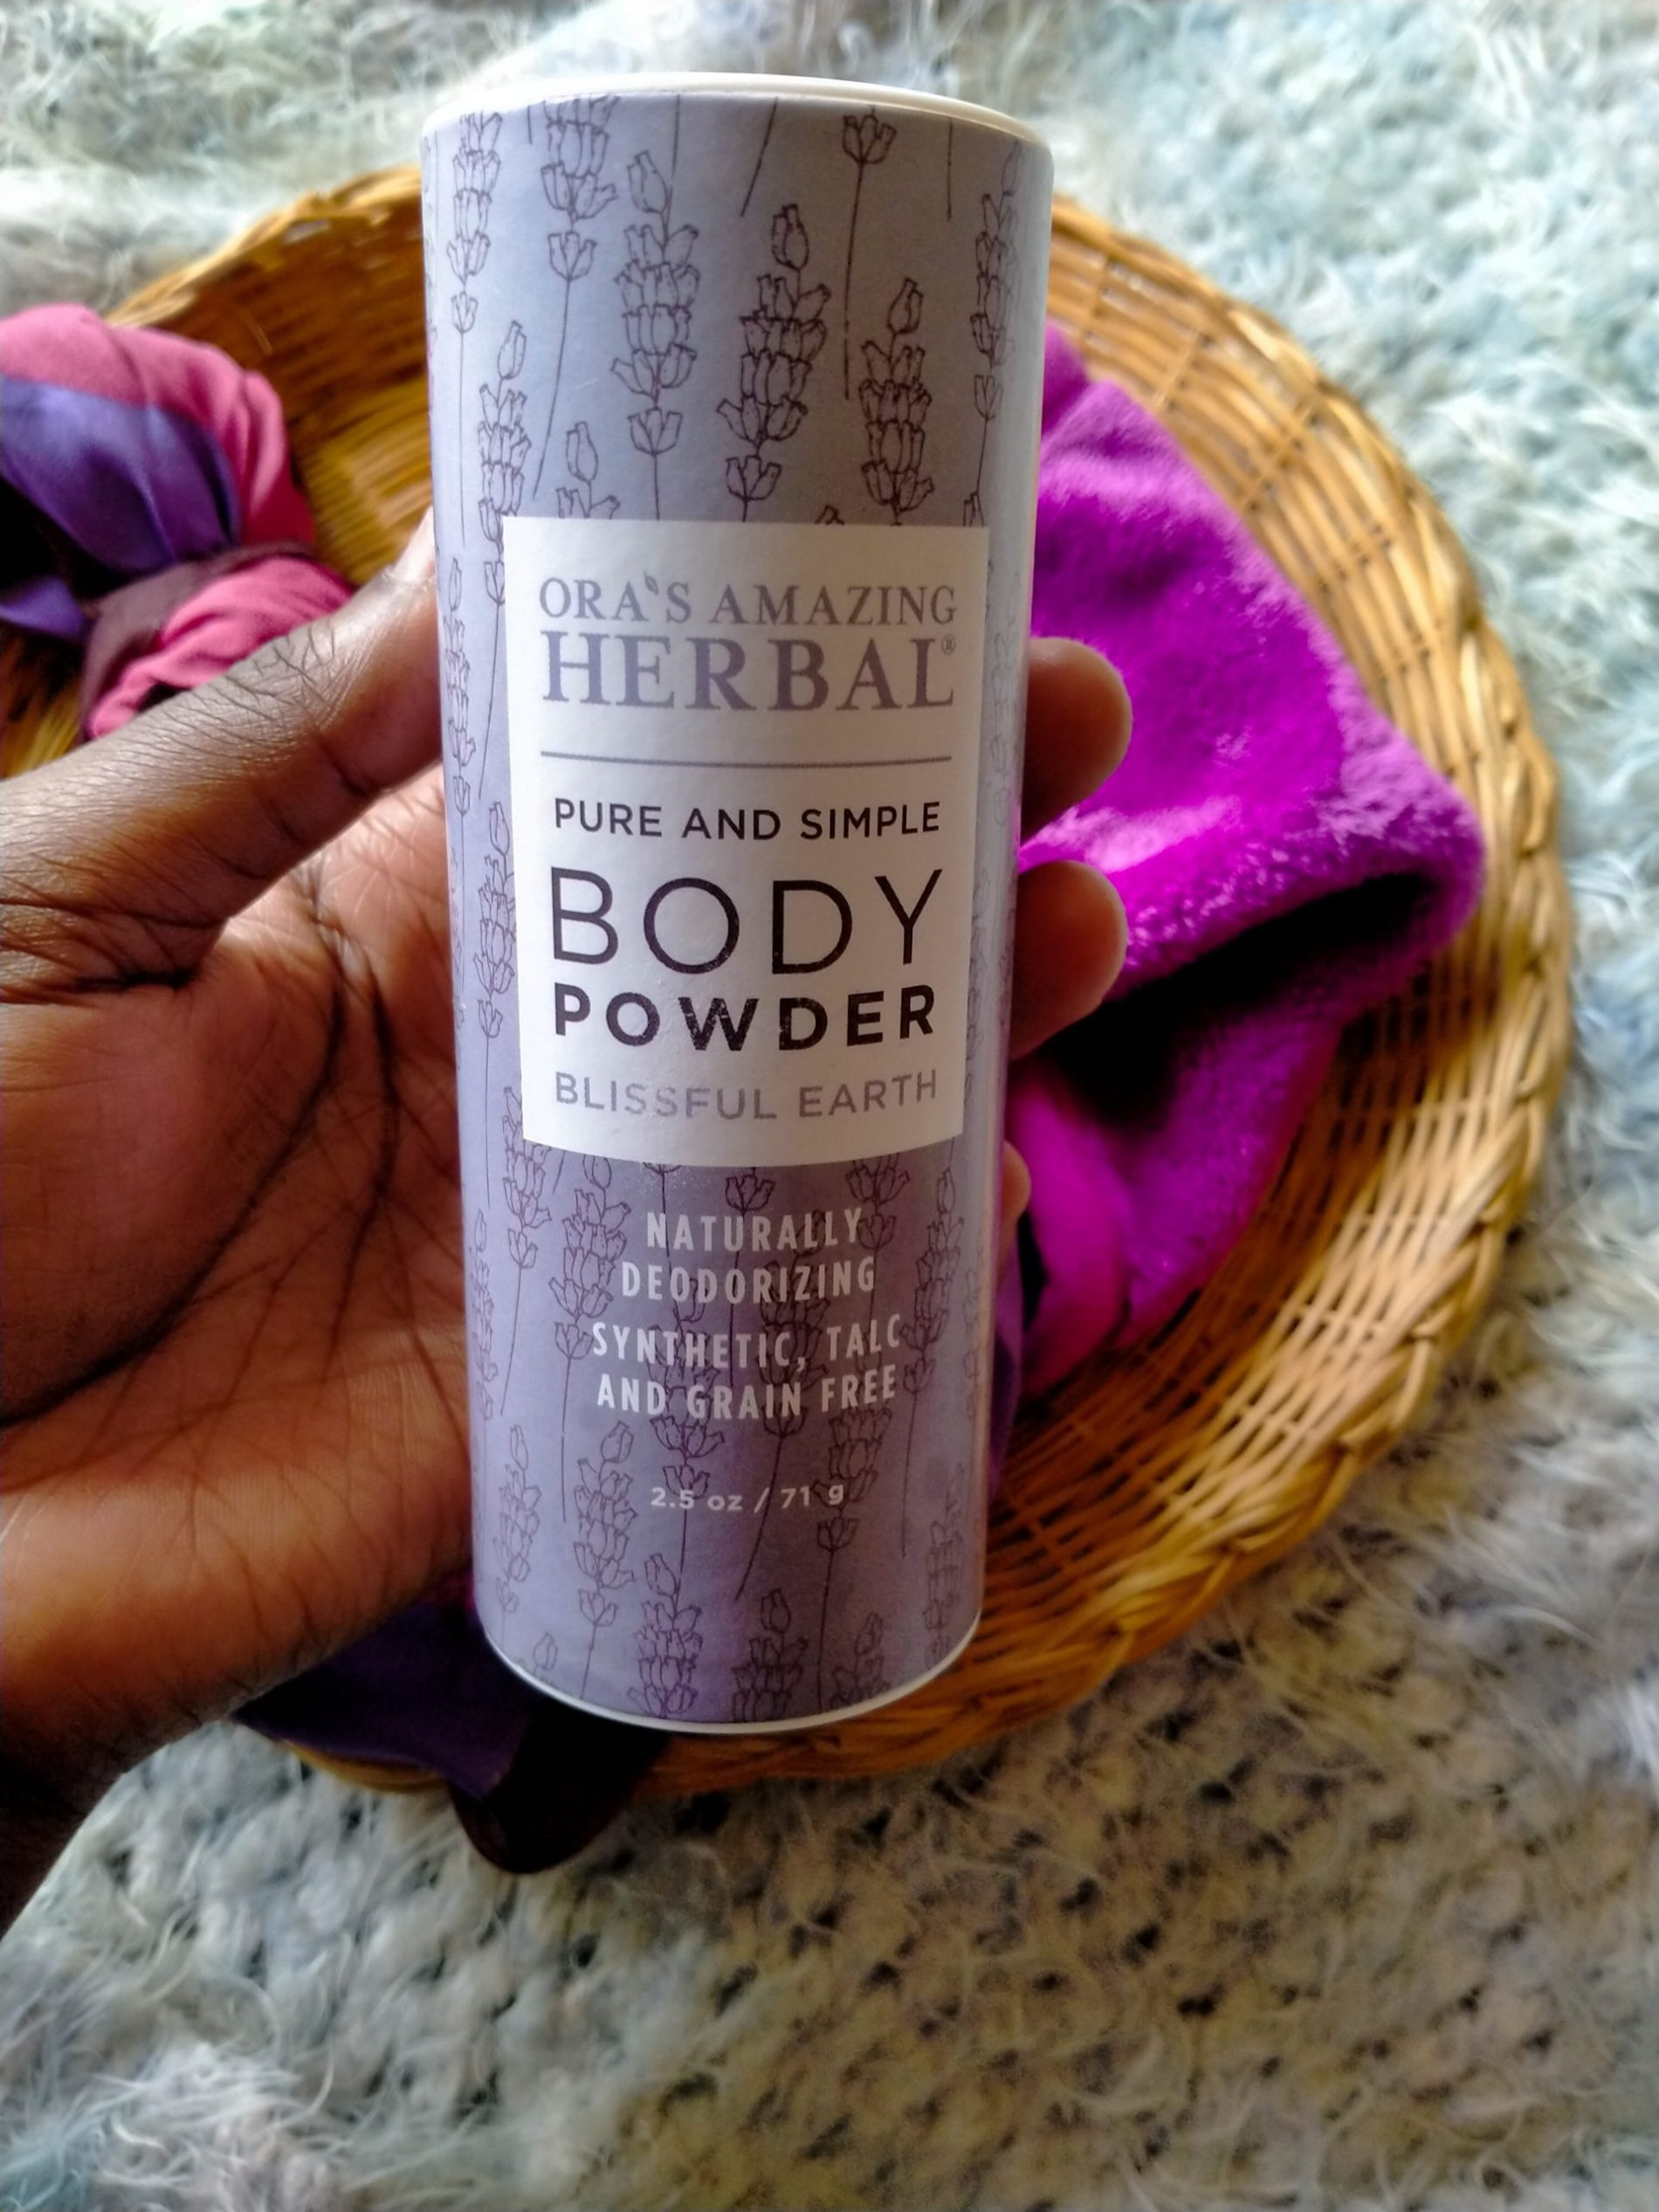 How To Use Body Powder- Ora's Herbal Blissful Earth Body Powder Review